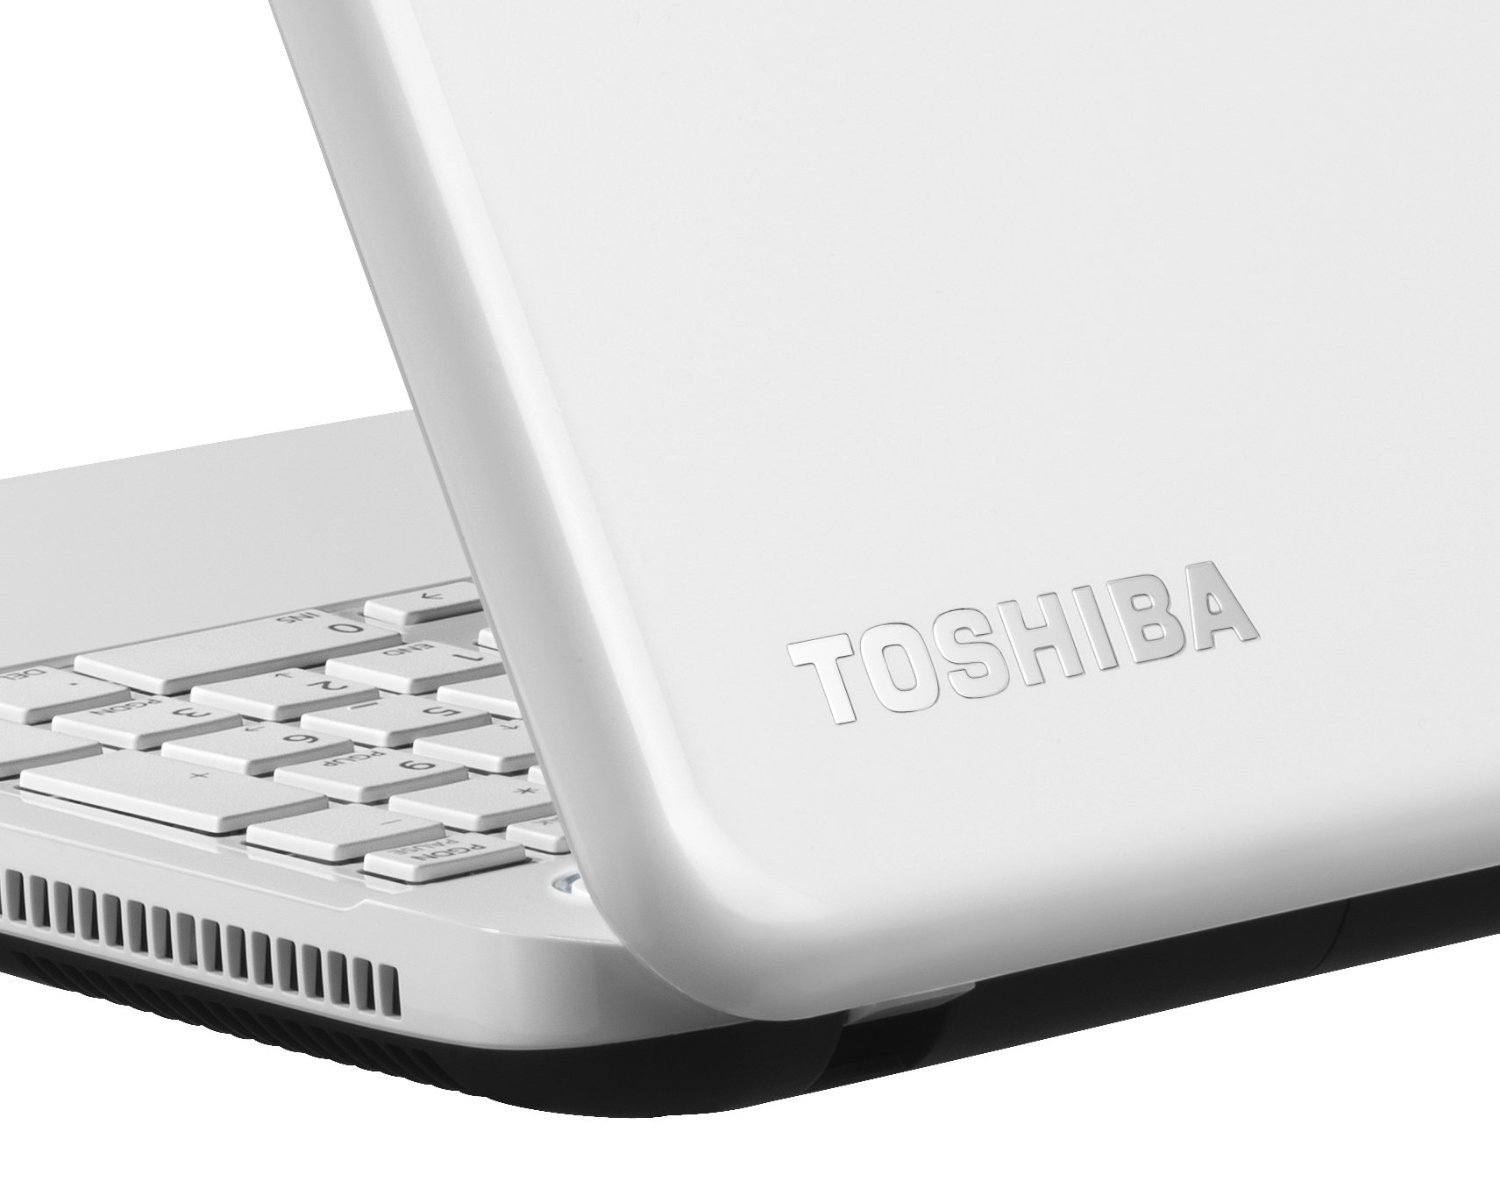 Toshiba Satellite C55DT-A ATI HDMI Audio Windows 7 64-BIT